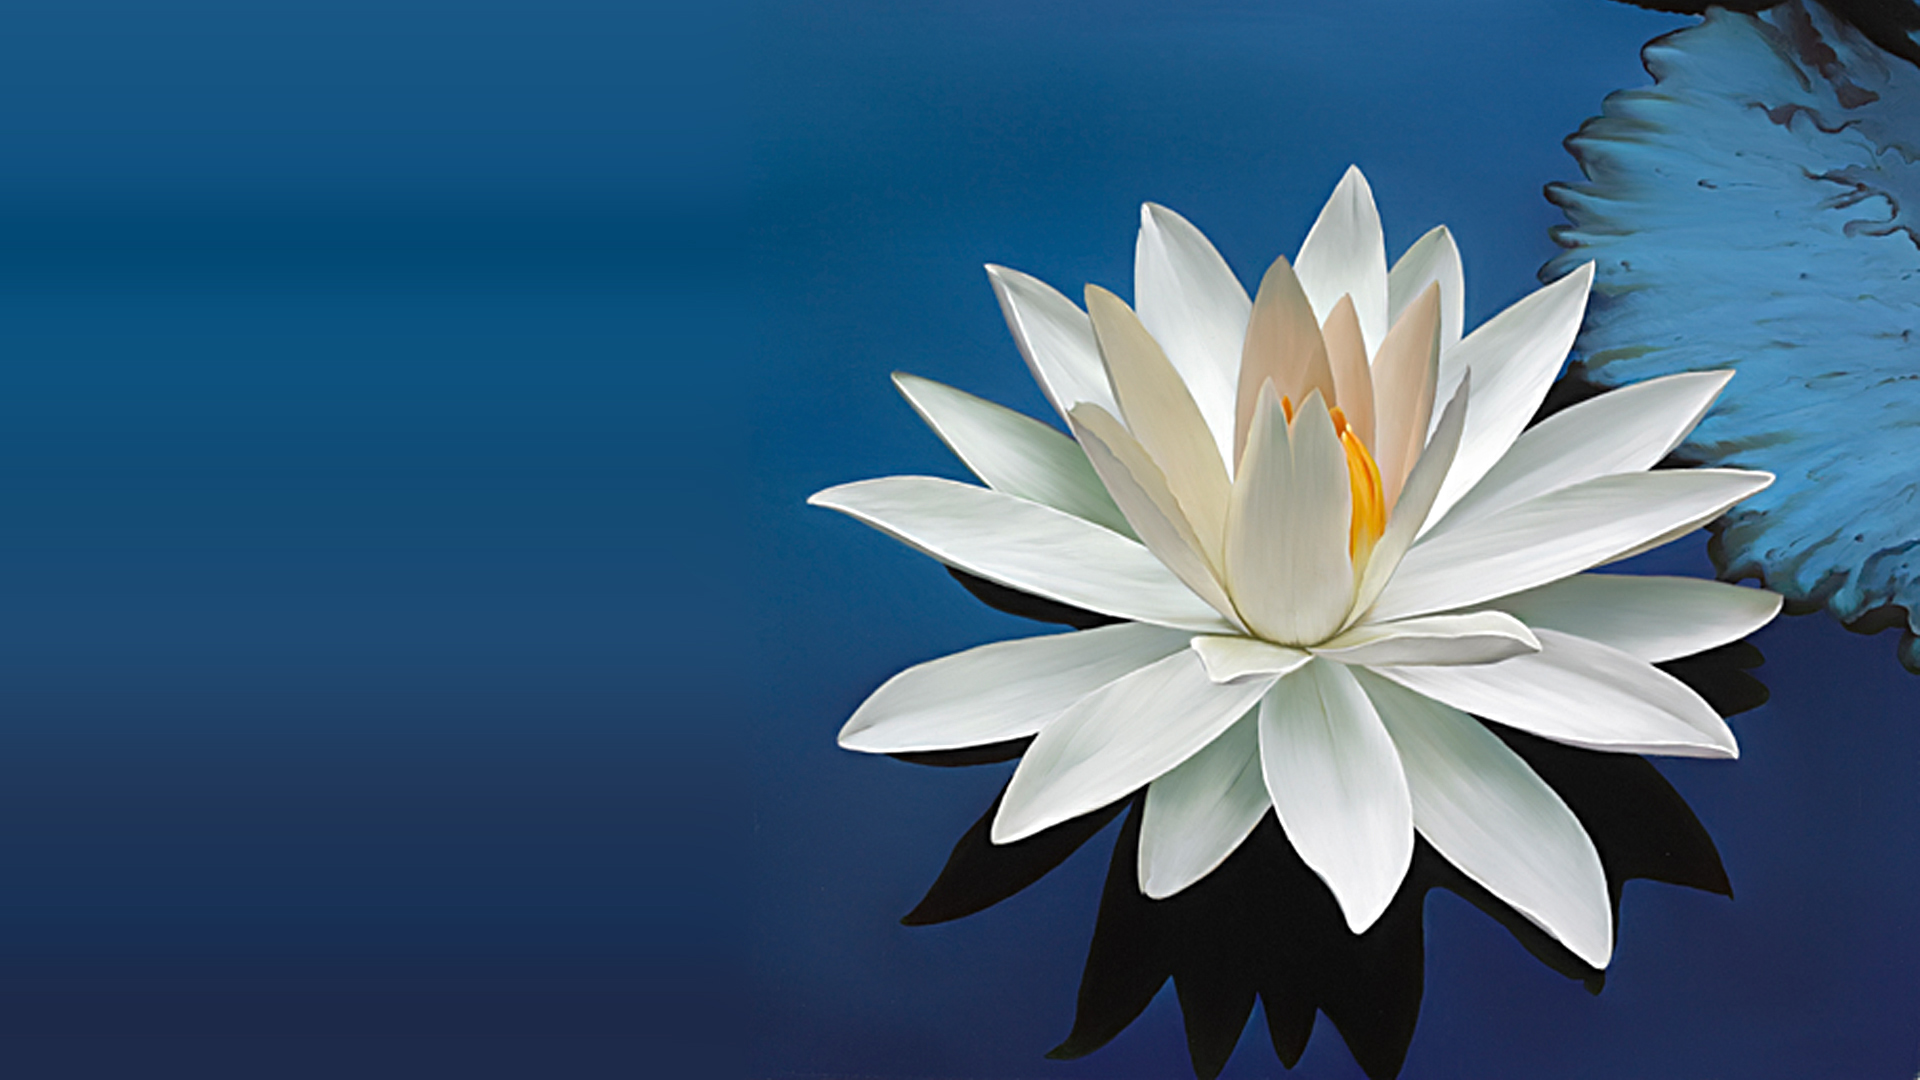 Nature wallpaper with beautiful white lotus flower hd wallpapers available downloads izmirmasajfo